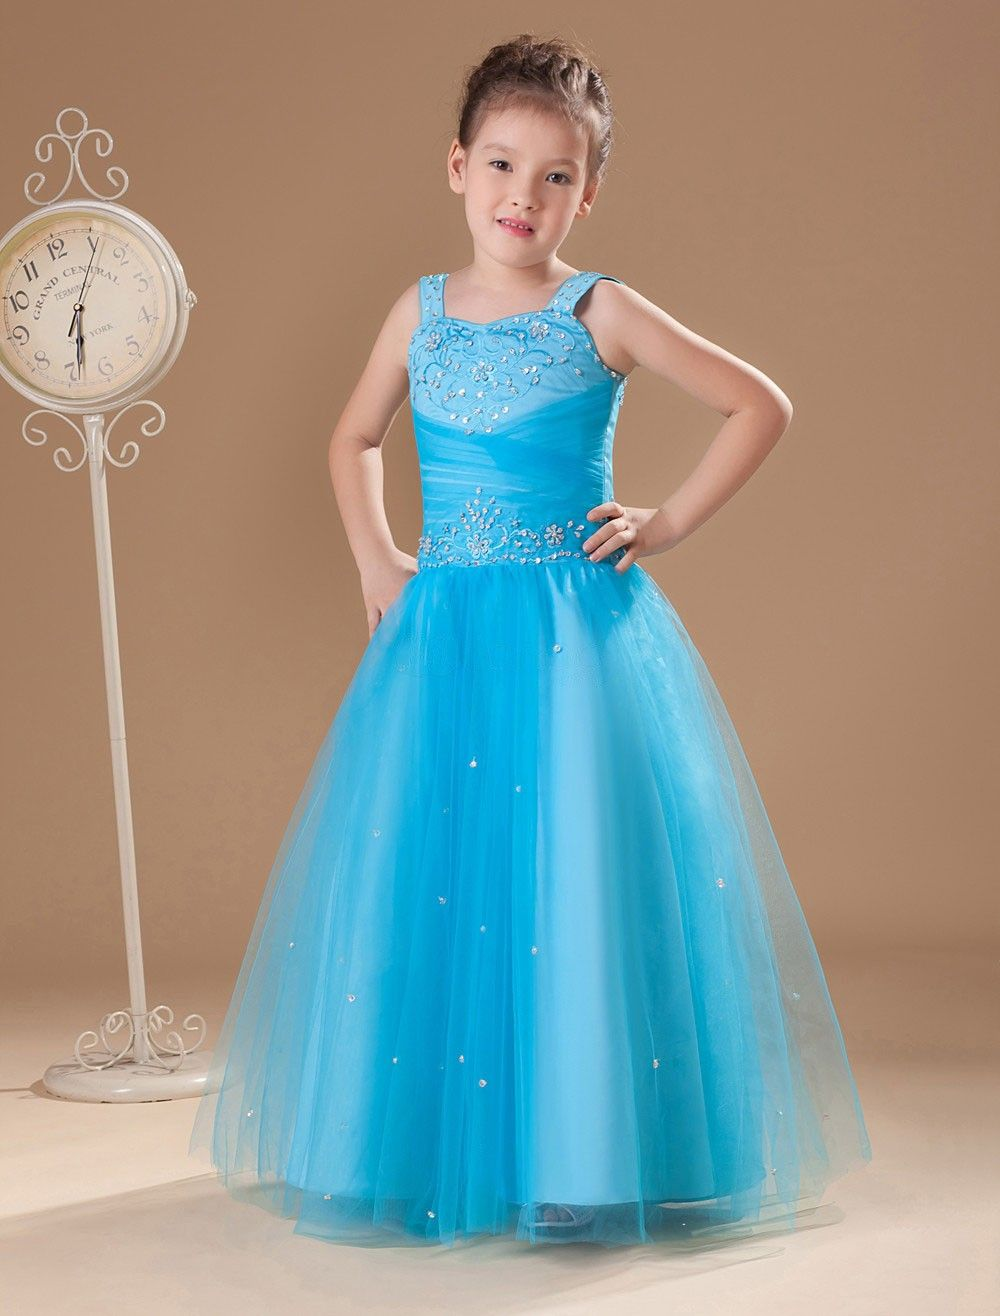 Girls Blue Dresses - Dress Xy